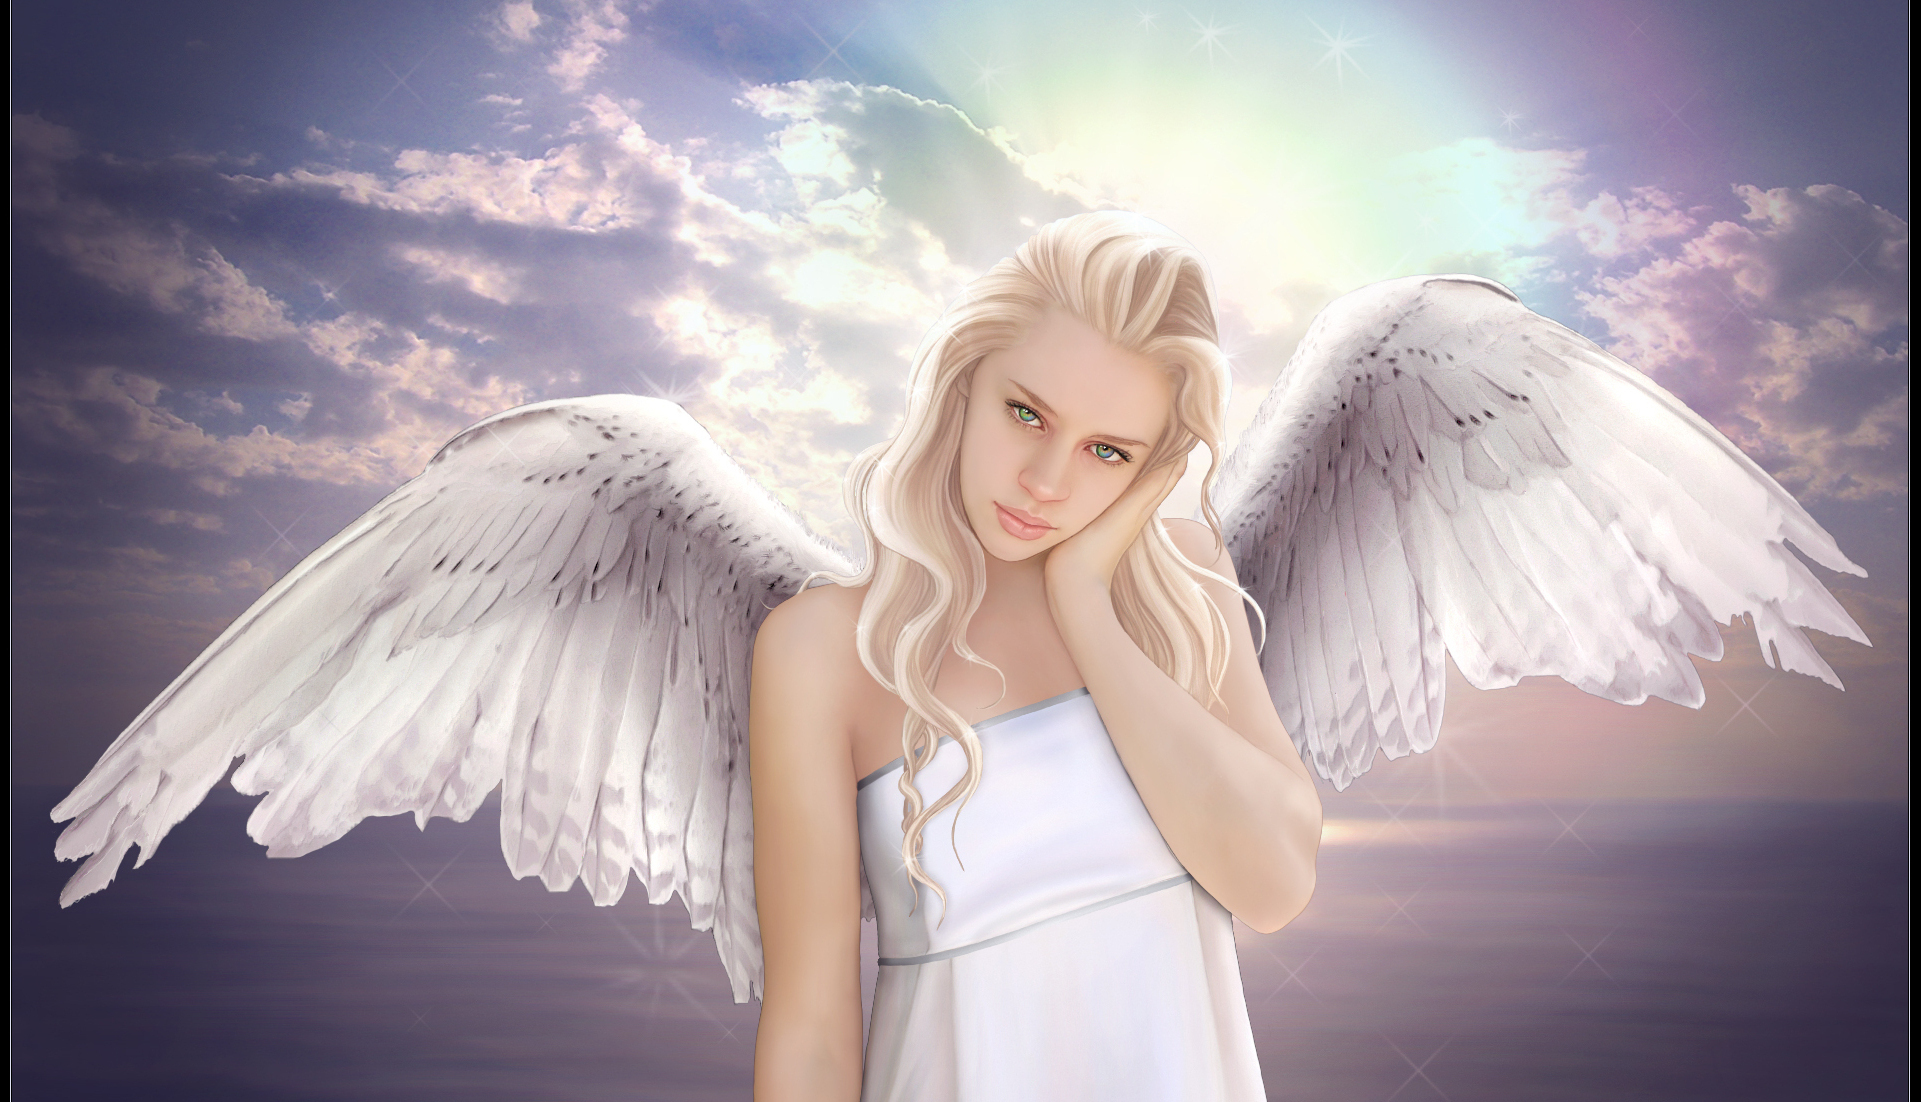 Angel Pictures Images Graphics For Facebook Whatsapp Page 3